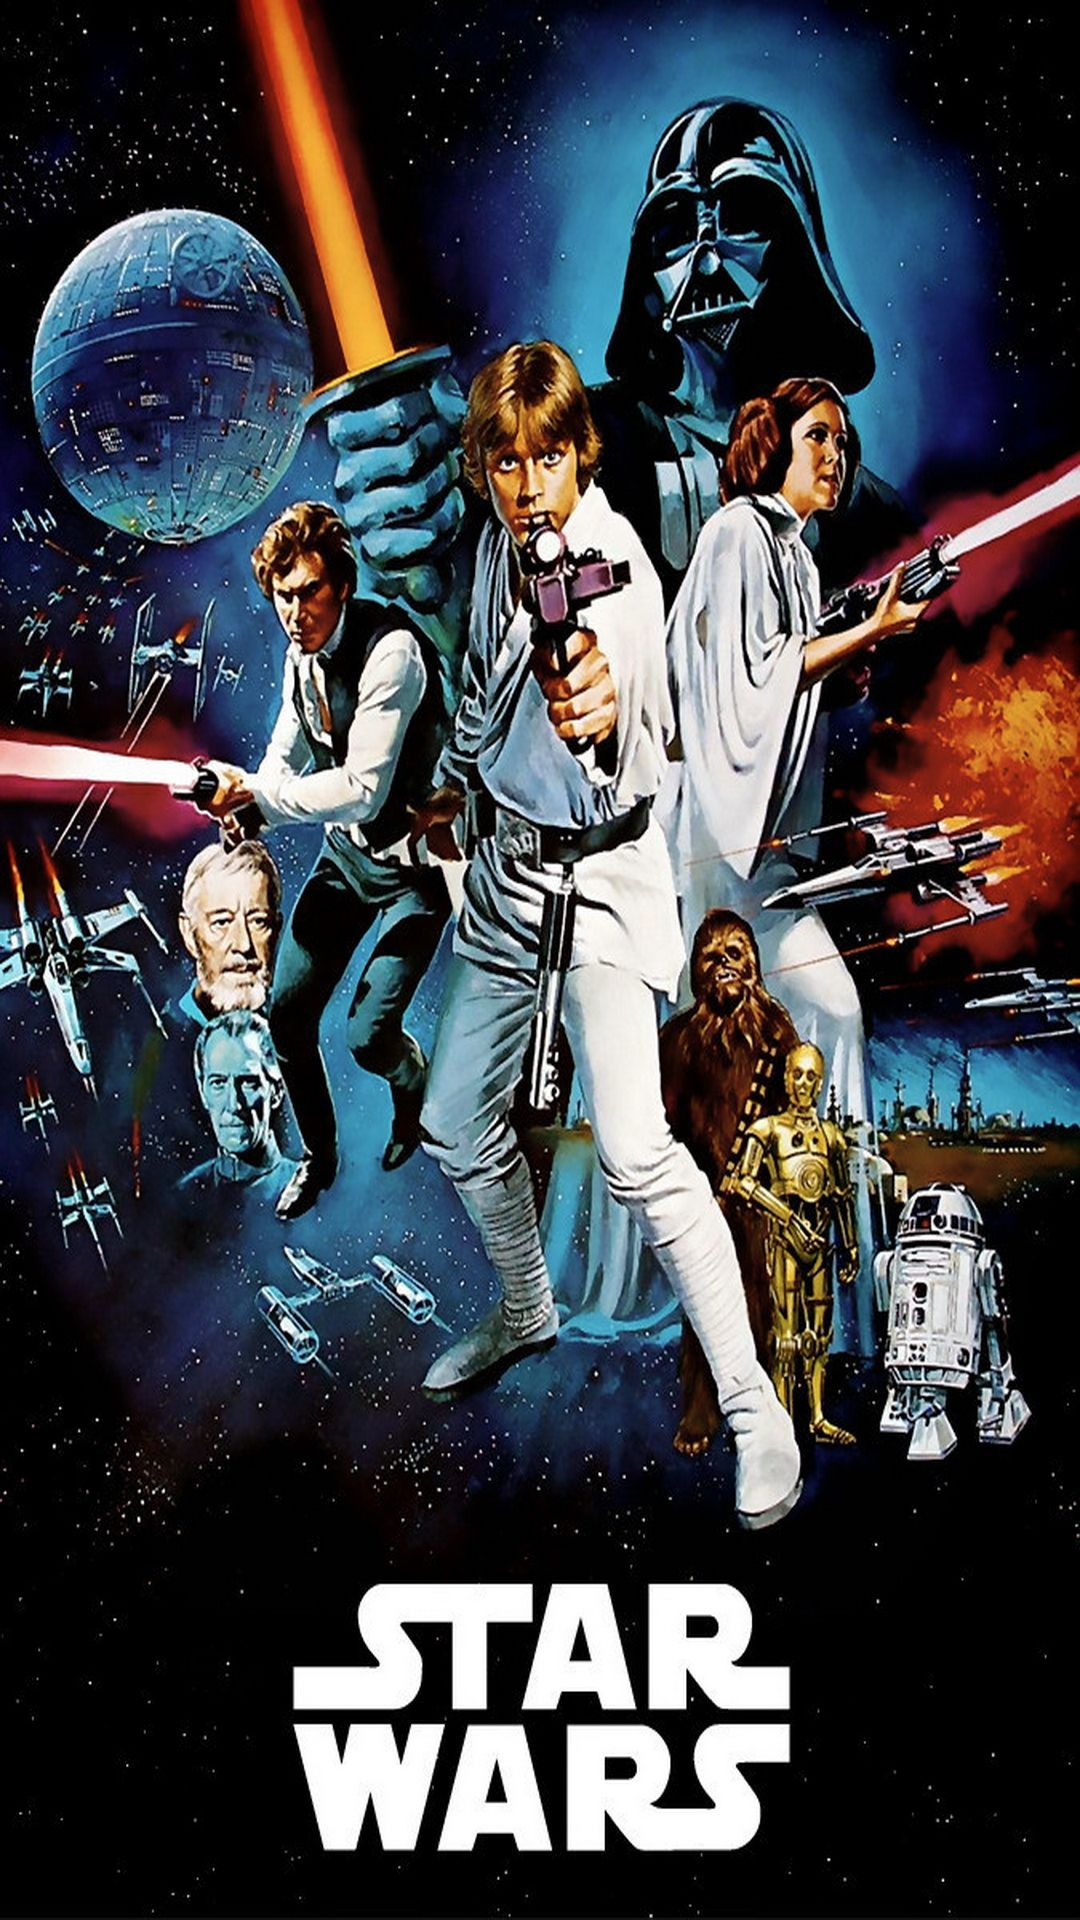 Here's 10 Movie Posters Wallpapers for the iPhone 6 Plus! Star Wars ...